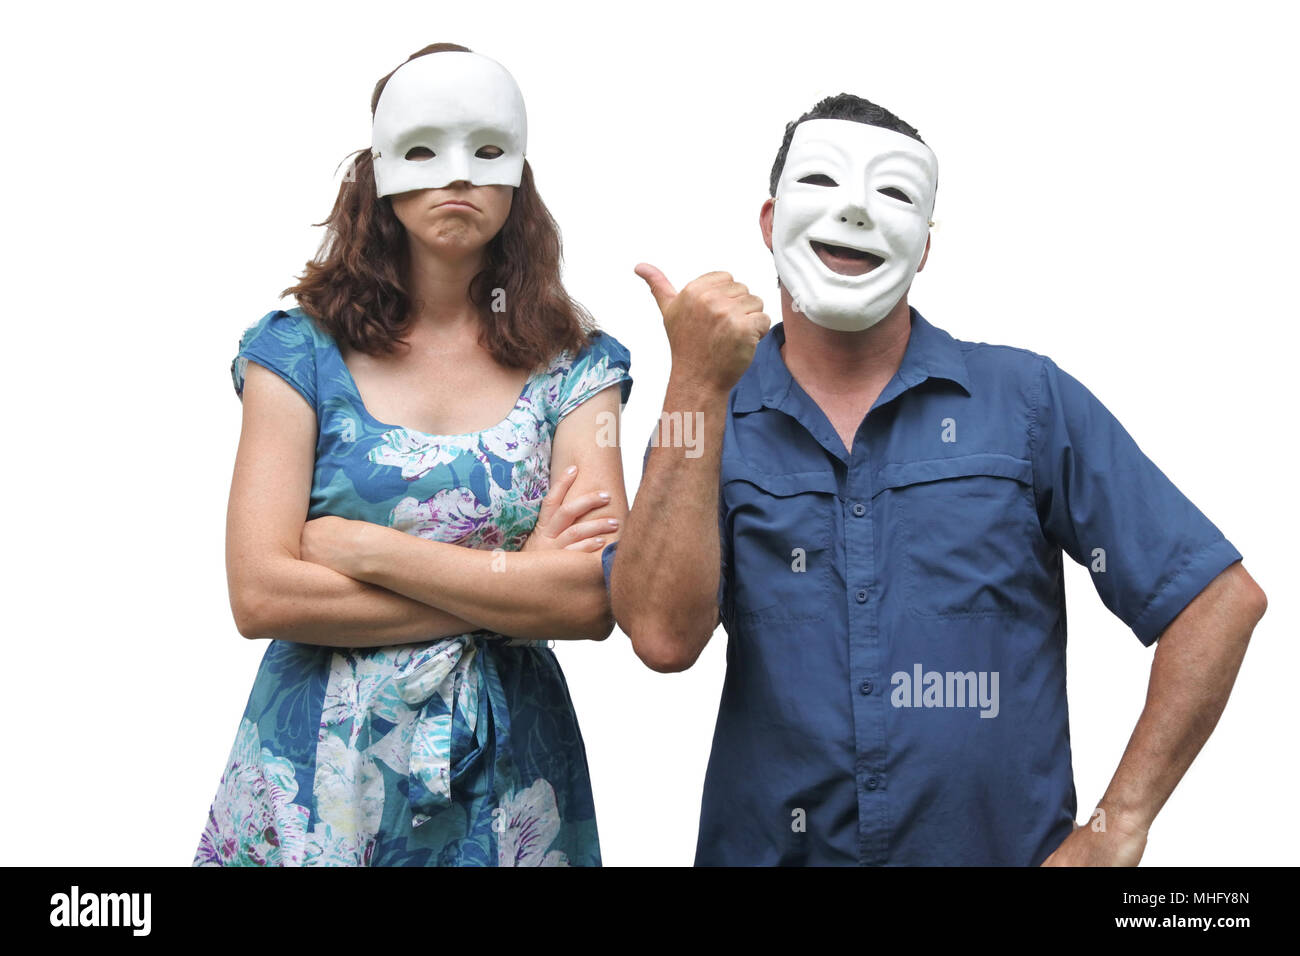 Man wearing a happy face mask laughing at a woman who wearing a sad face mask. Real people. Copy space - Stock Image